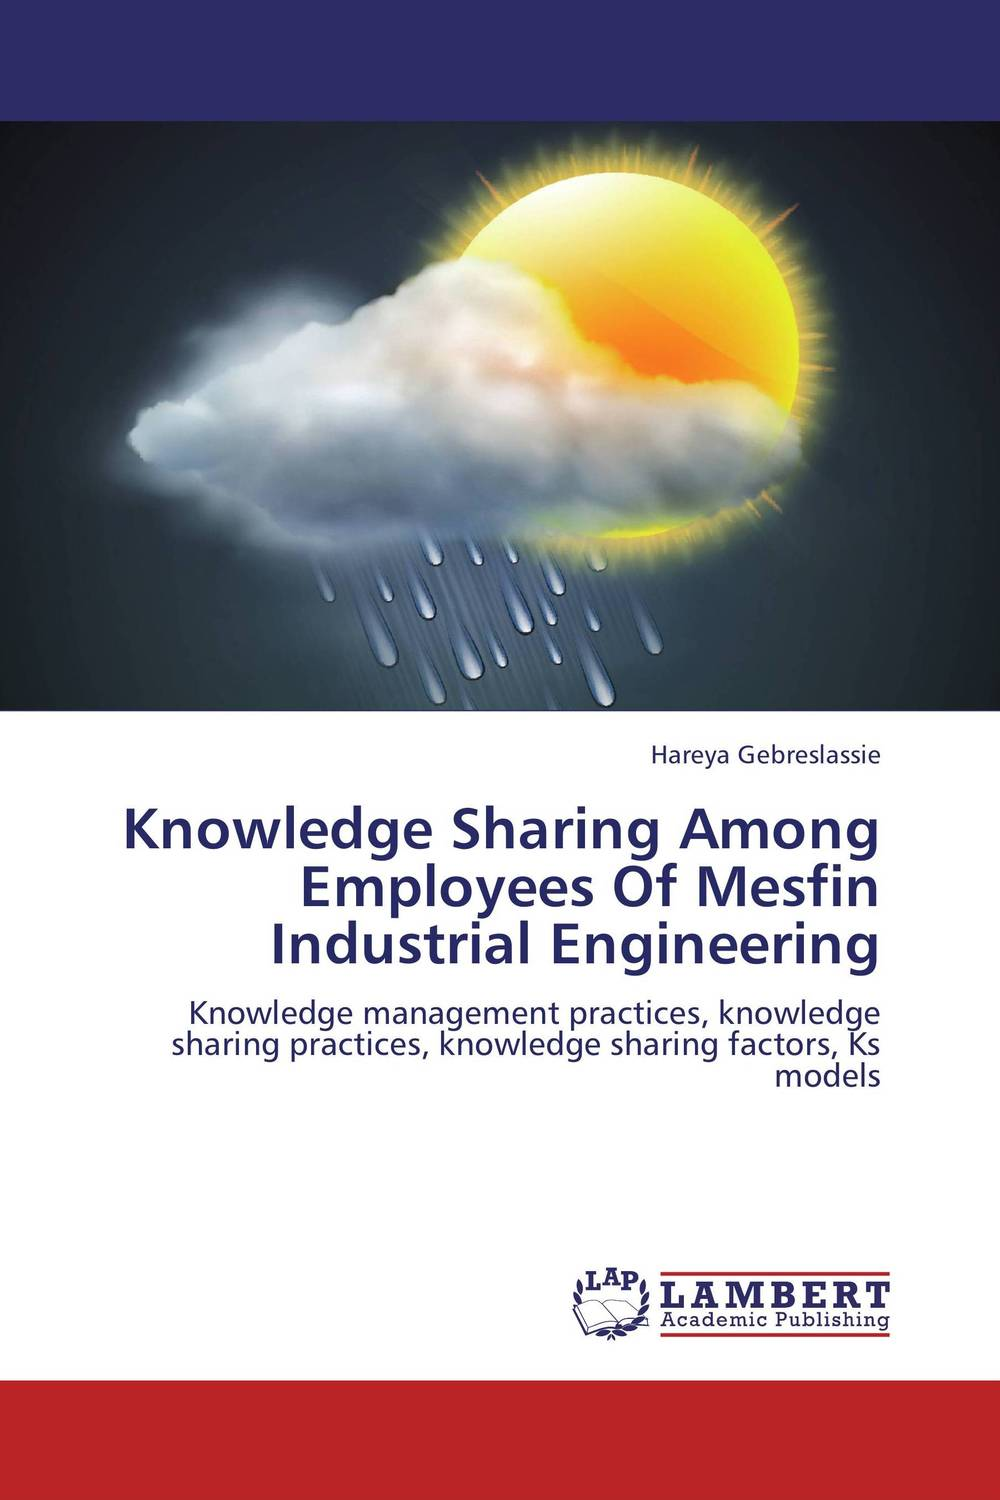 Knowledge Sharing Among Employees Of Mesfin Industrial Engineering